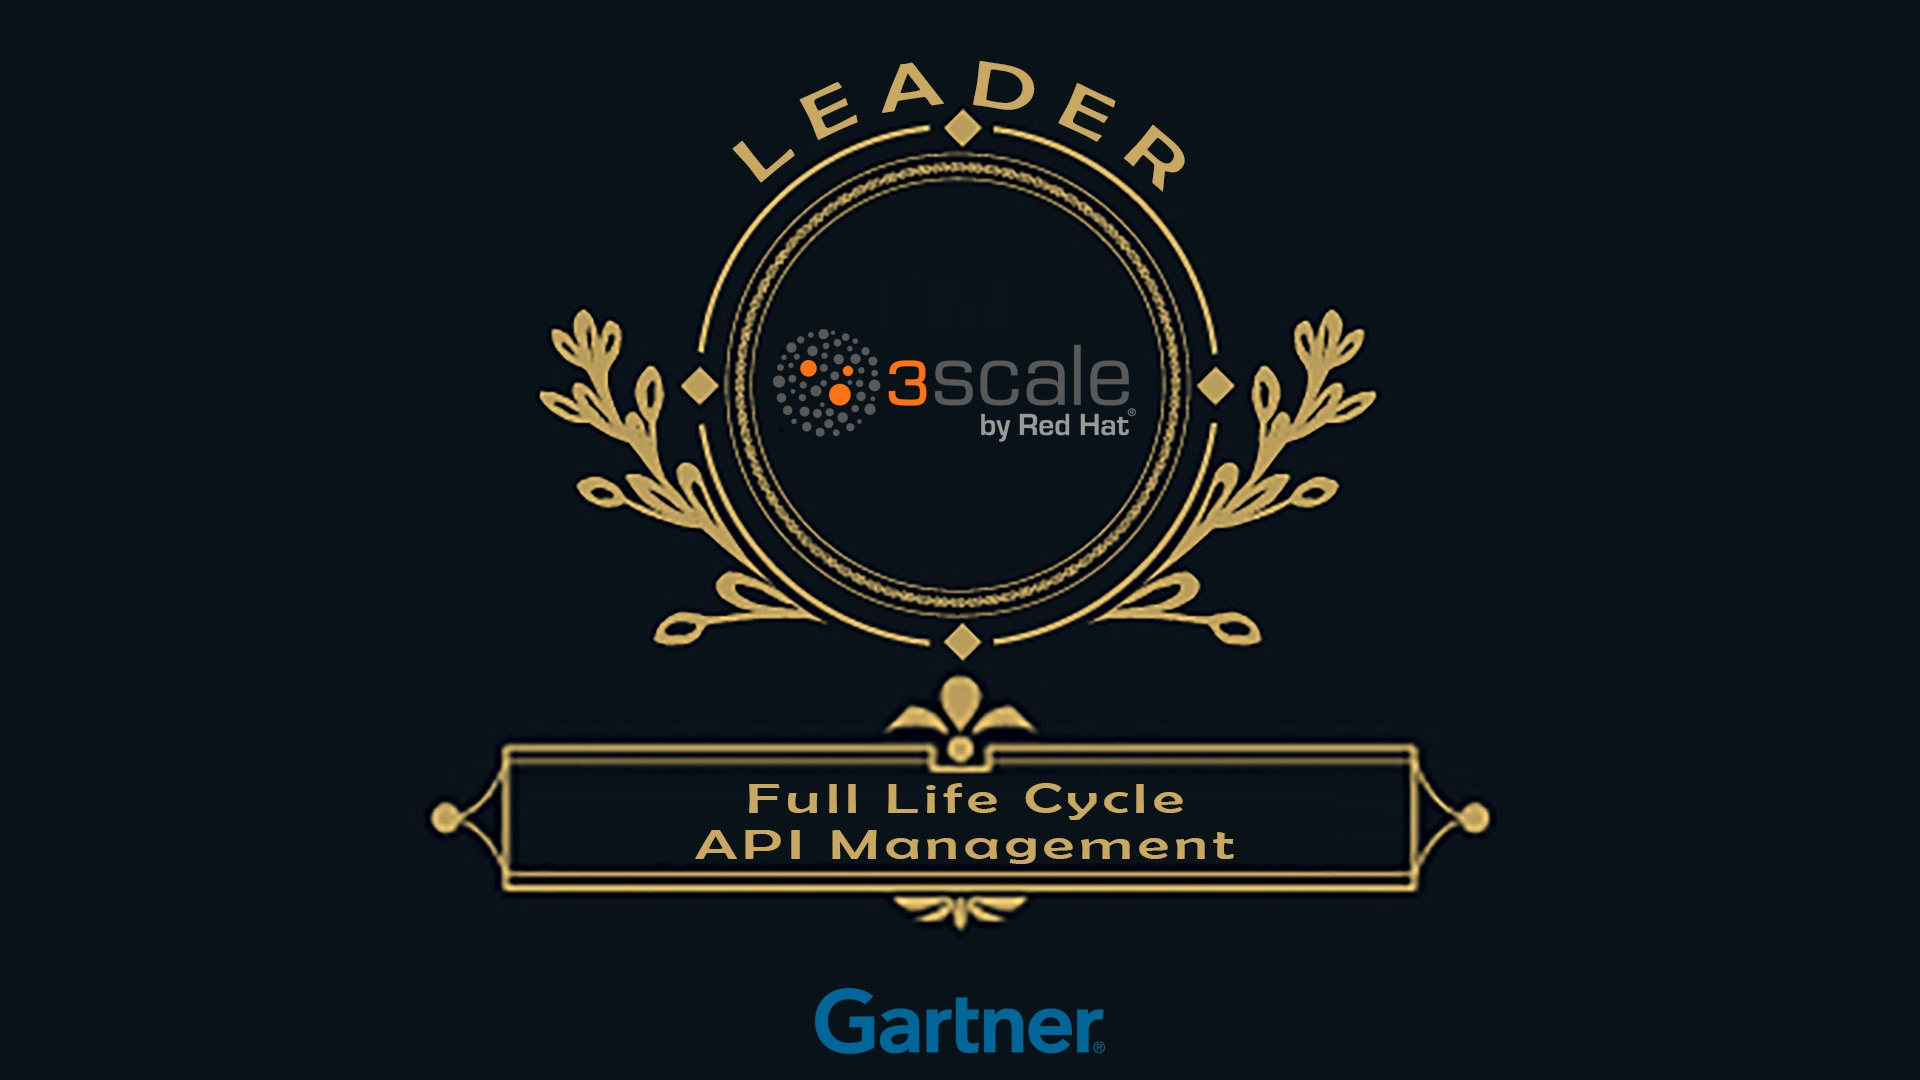 Red Hat 3scale nominato leader da Gartner per il Full Life Cycle API Management